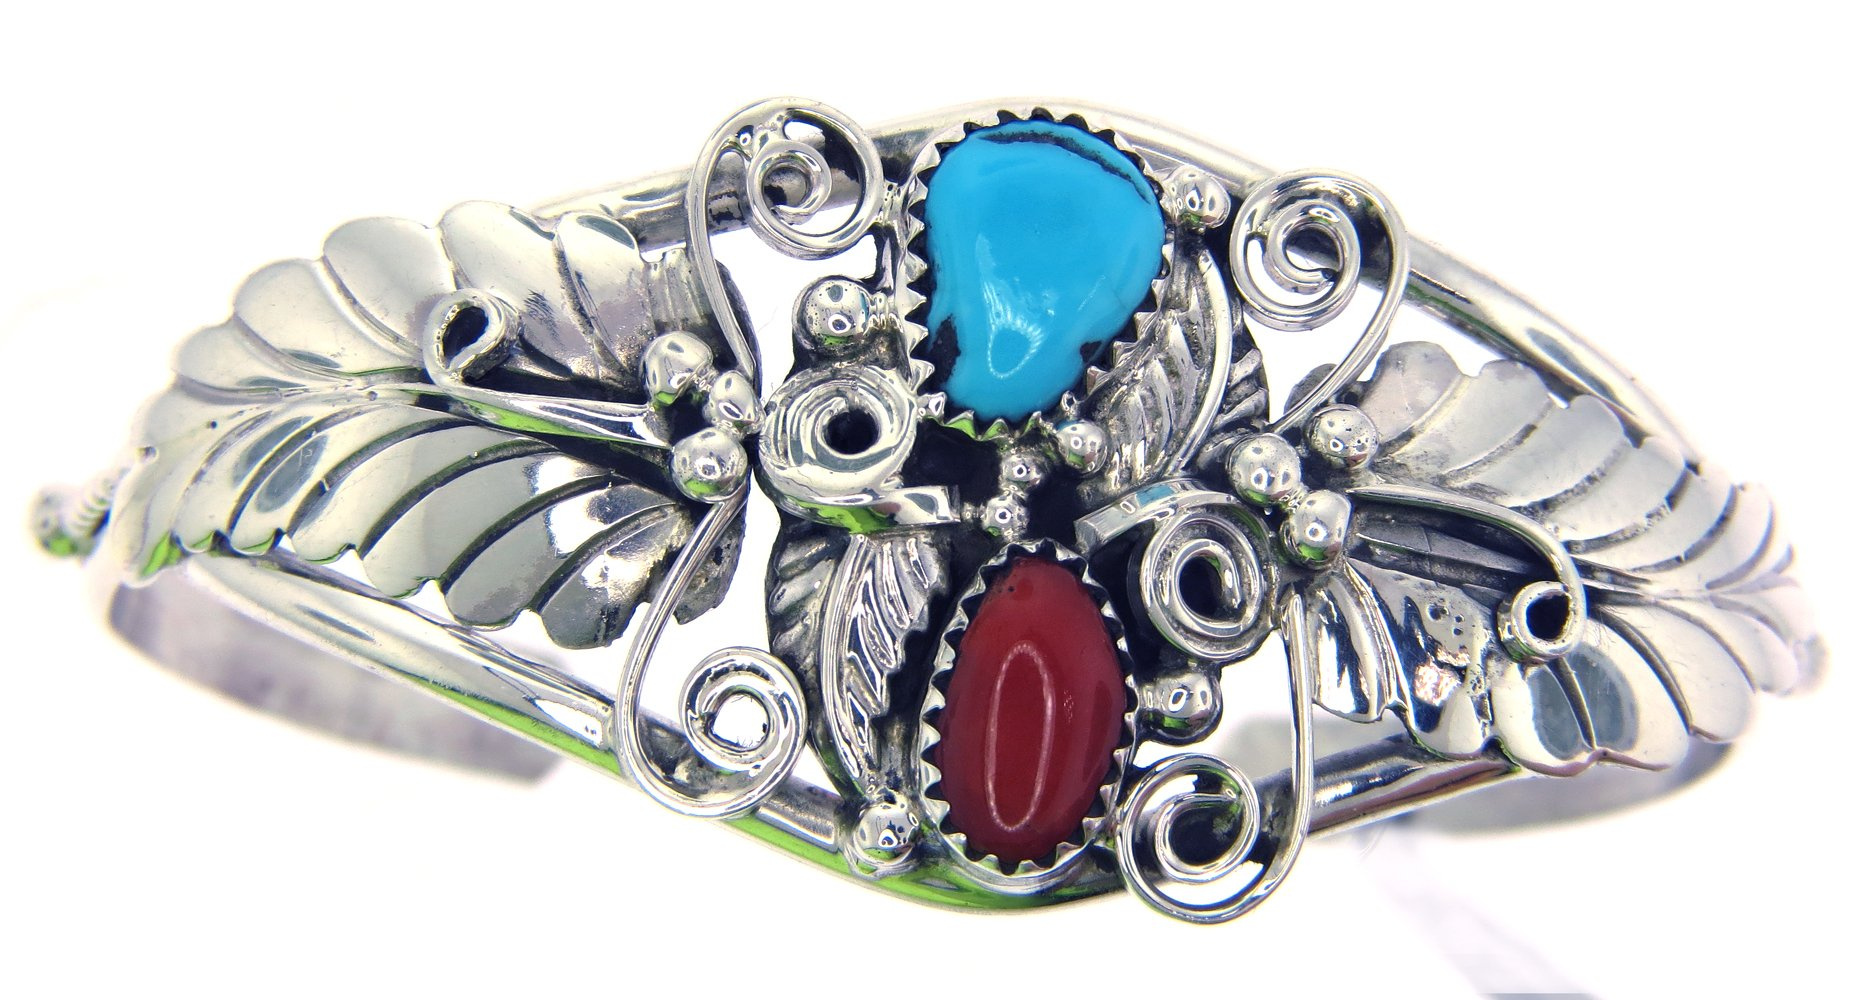 USA Made By Navajo Artist Alice Johnson: Genuine Navajo Turquoise-Coral Women's Bracelet